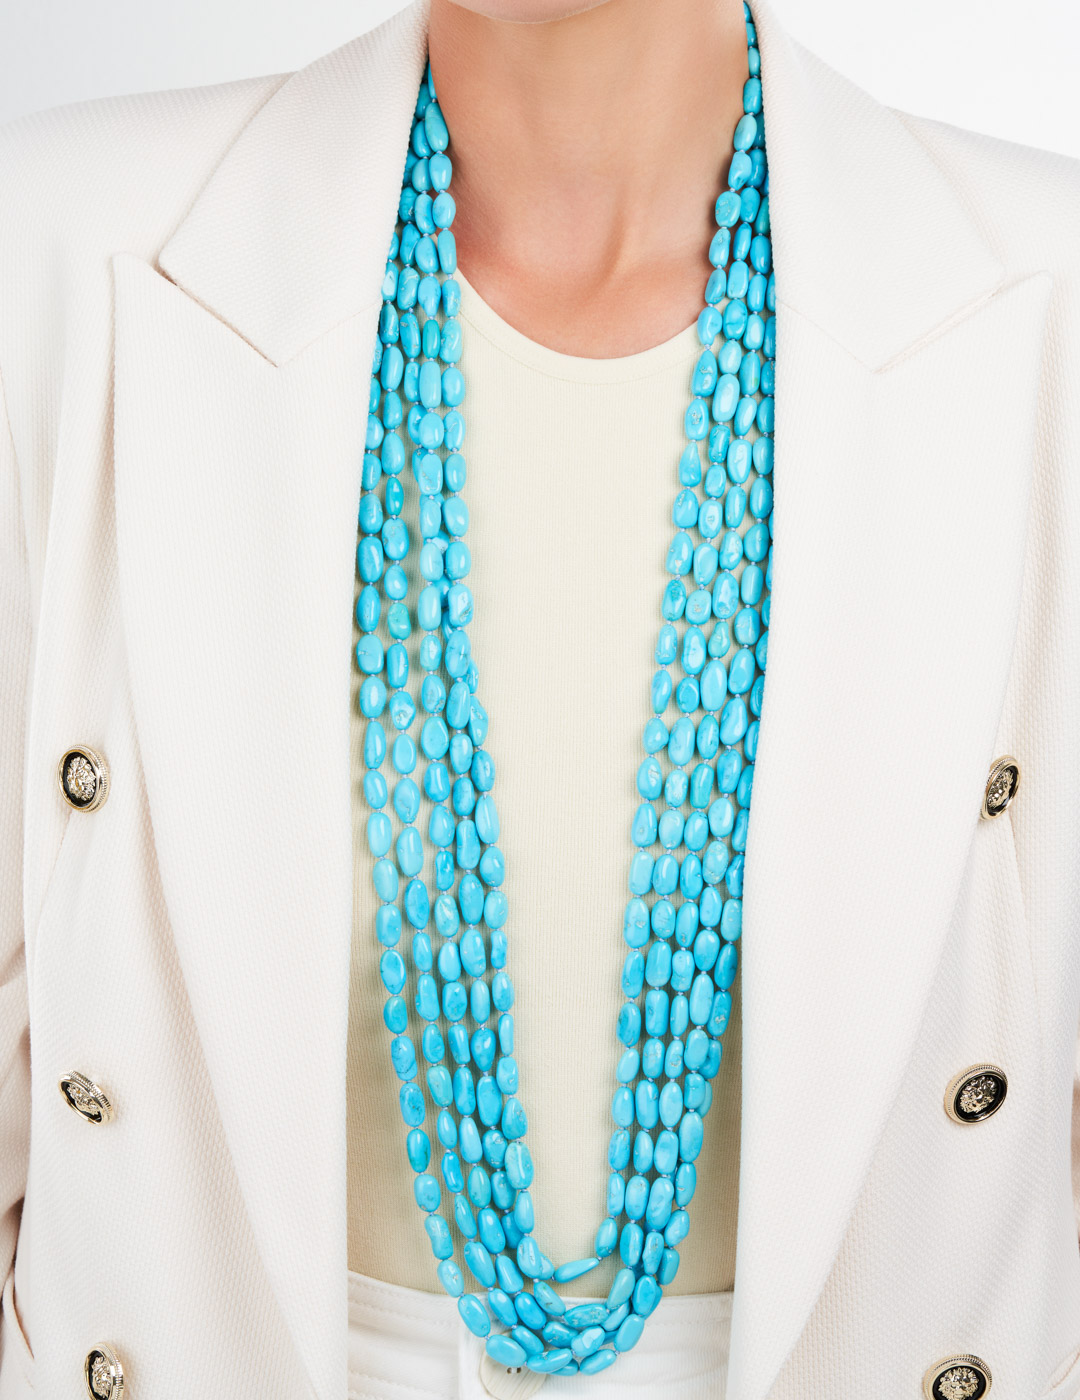 mish_necklaces_Turq-Twig-Waterfall NK-2